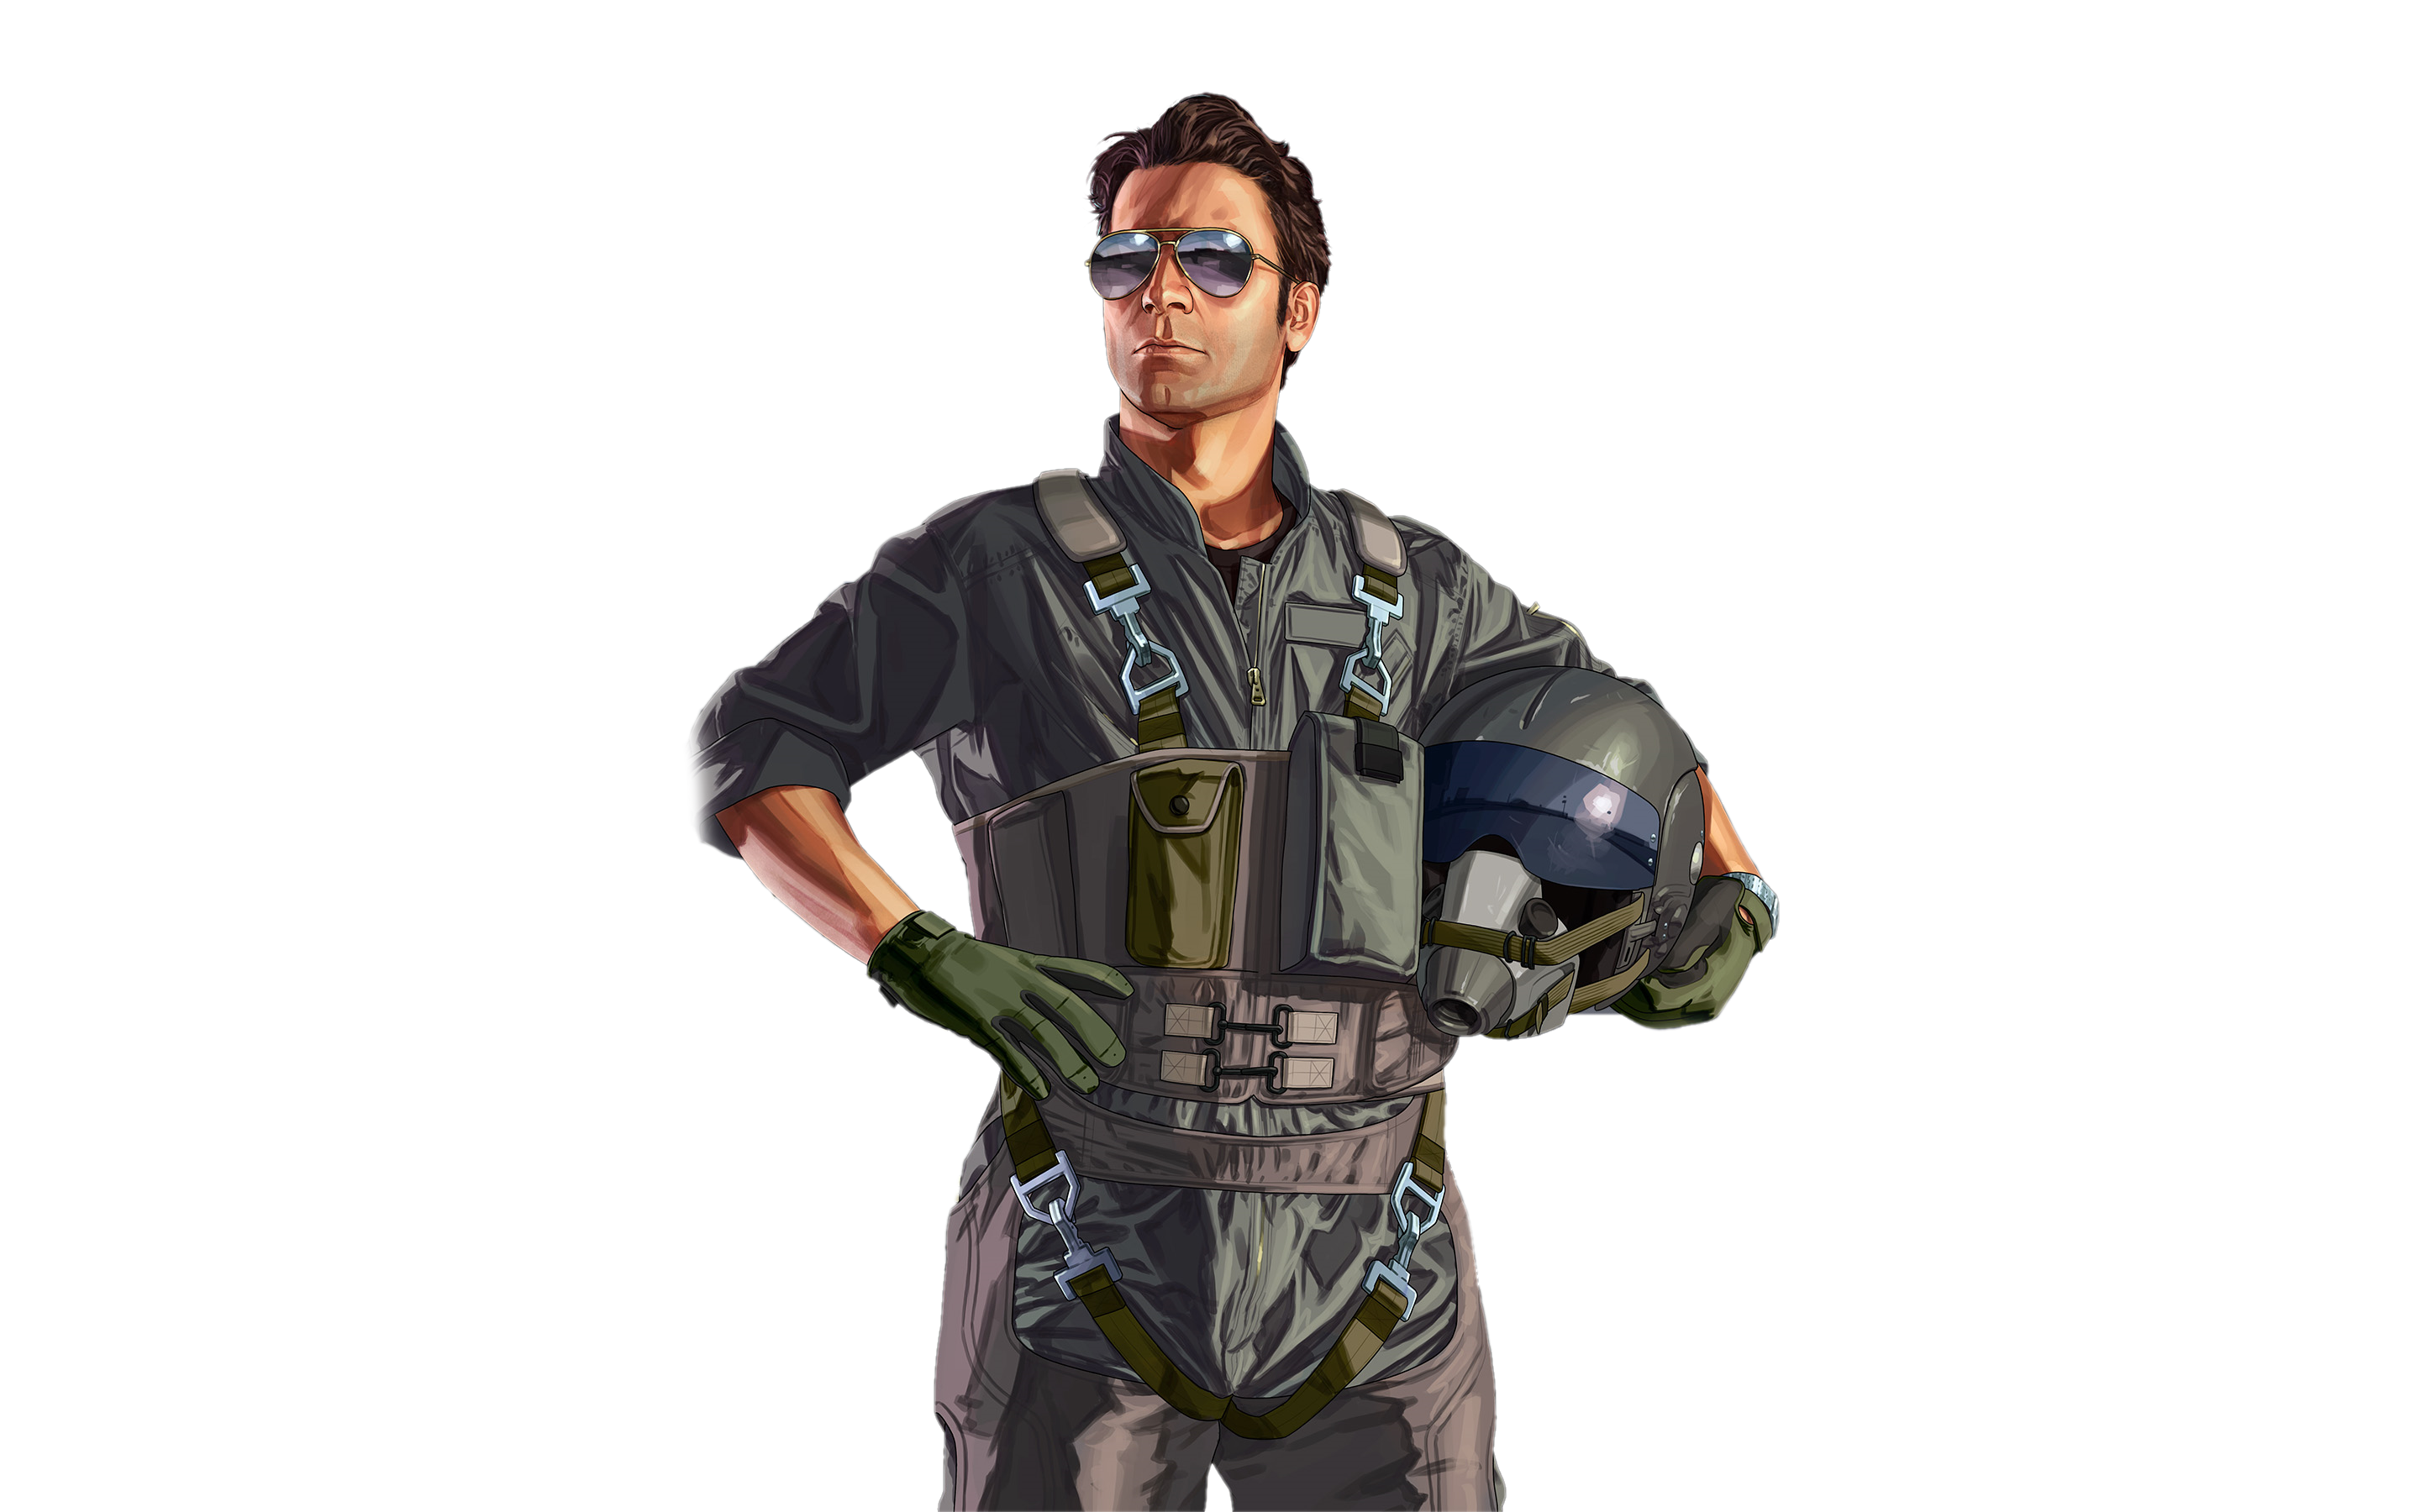 Gta 5 soldier png. Render topic page